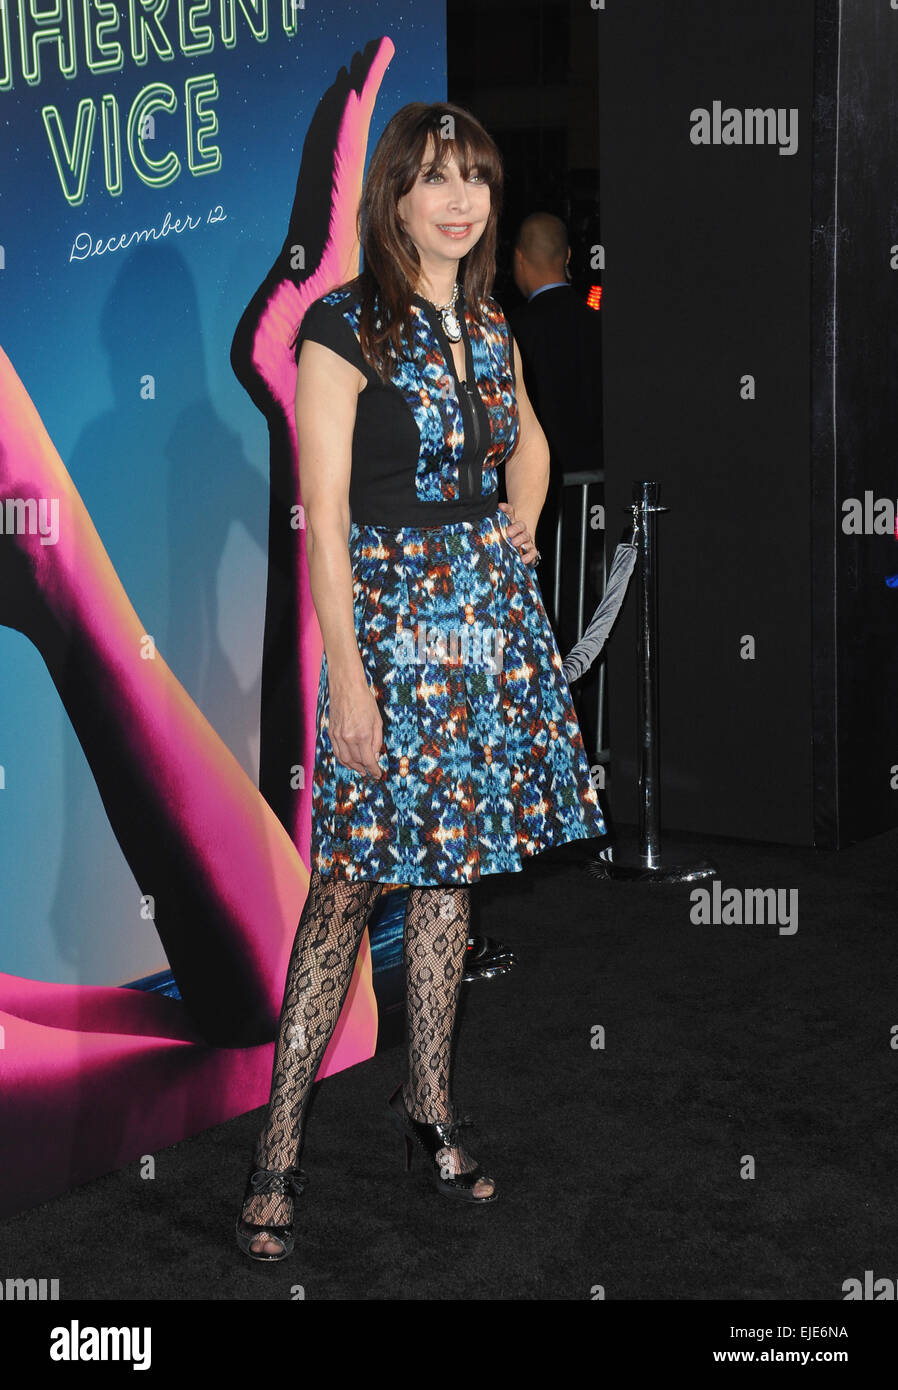 LOS ANGELES, CA - DECEMBER 10, 2014: Illeana Douglas at the Los Angeles premiere of 'Inherent Vice' at the - Stock Image